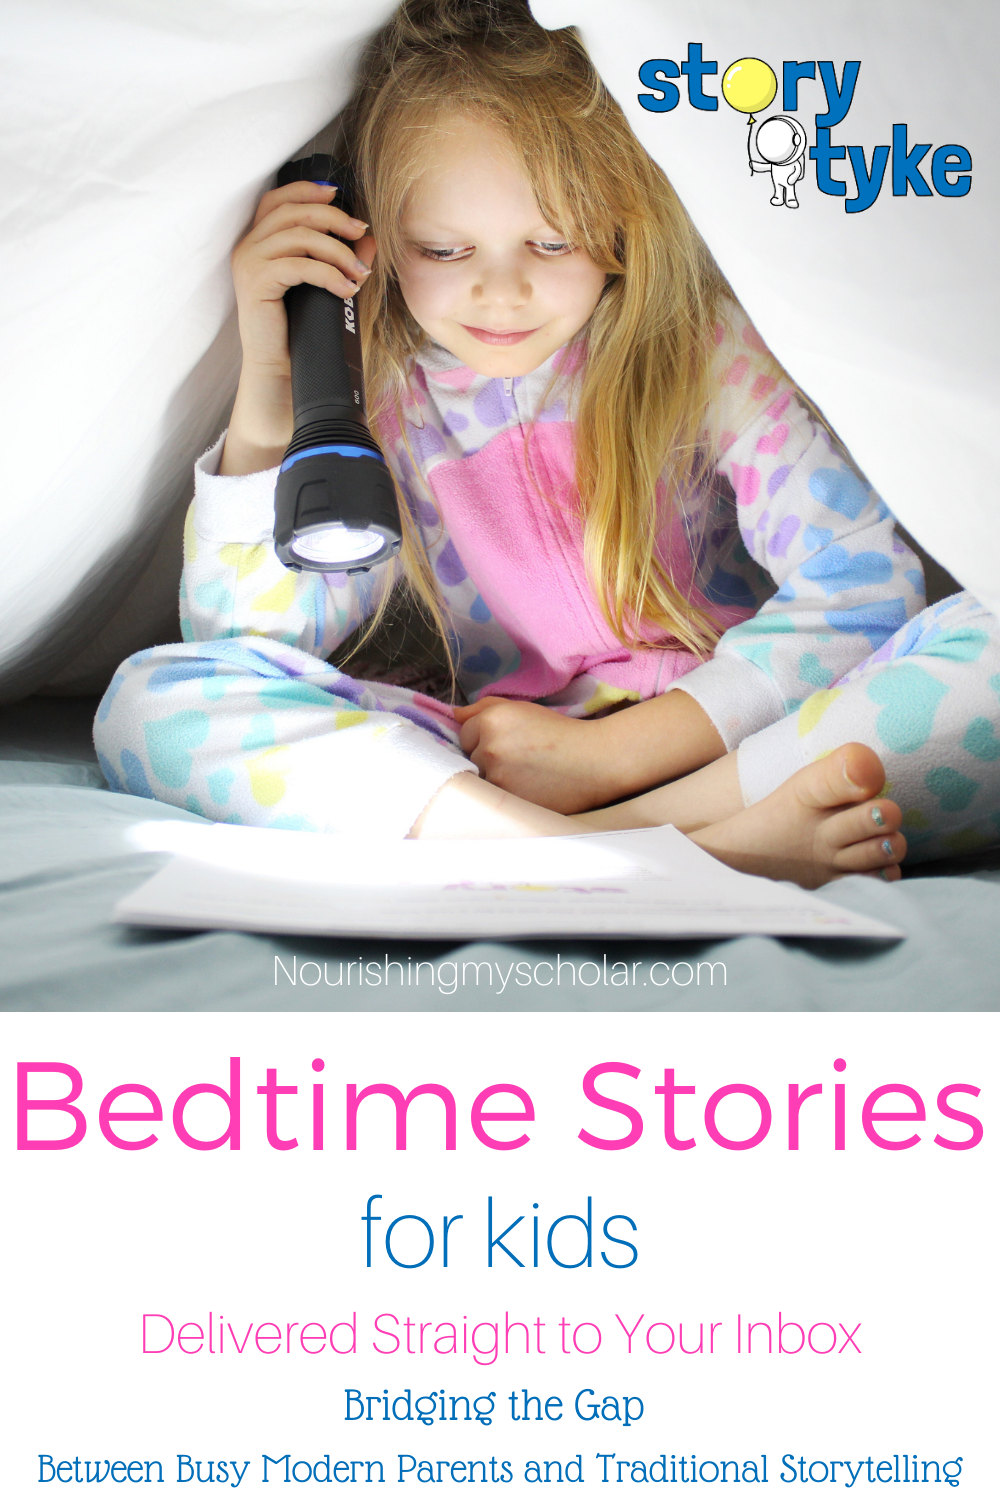 Bedtime Stories for Kids: Create that special moment of quiet just before sleep with these quality bedtime stories for kids that take just 5 minutes to read! Your children will love these delightful short stories that are delivered straight to your inbox by 6 pm each school night! Plus, they're FREE! #bedtimestories #bedtimestoriesforkids #shortbedtimestories #childrensbedtimestories #5minutebedtimestories #shortbedtimestories #freebedtimestories #StoryTyke #momlife # reading #bedtime #stories